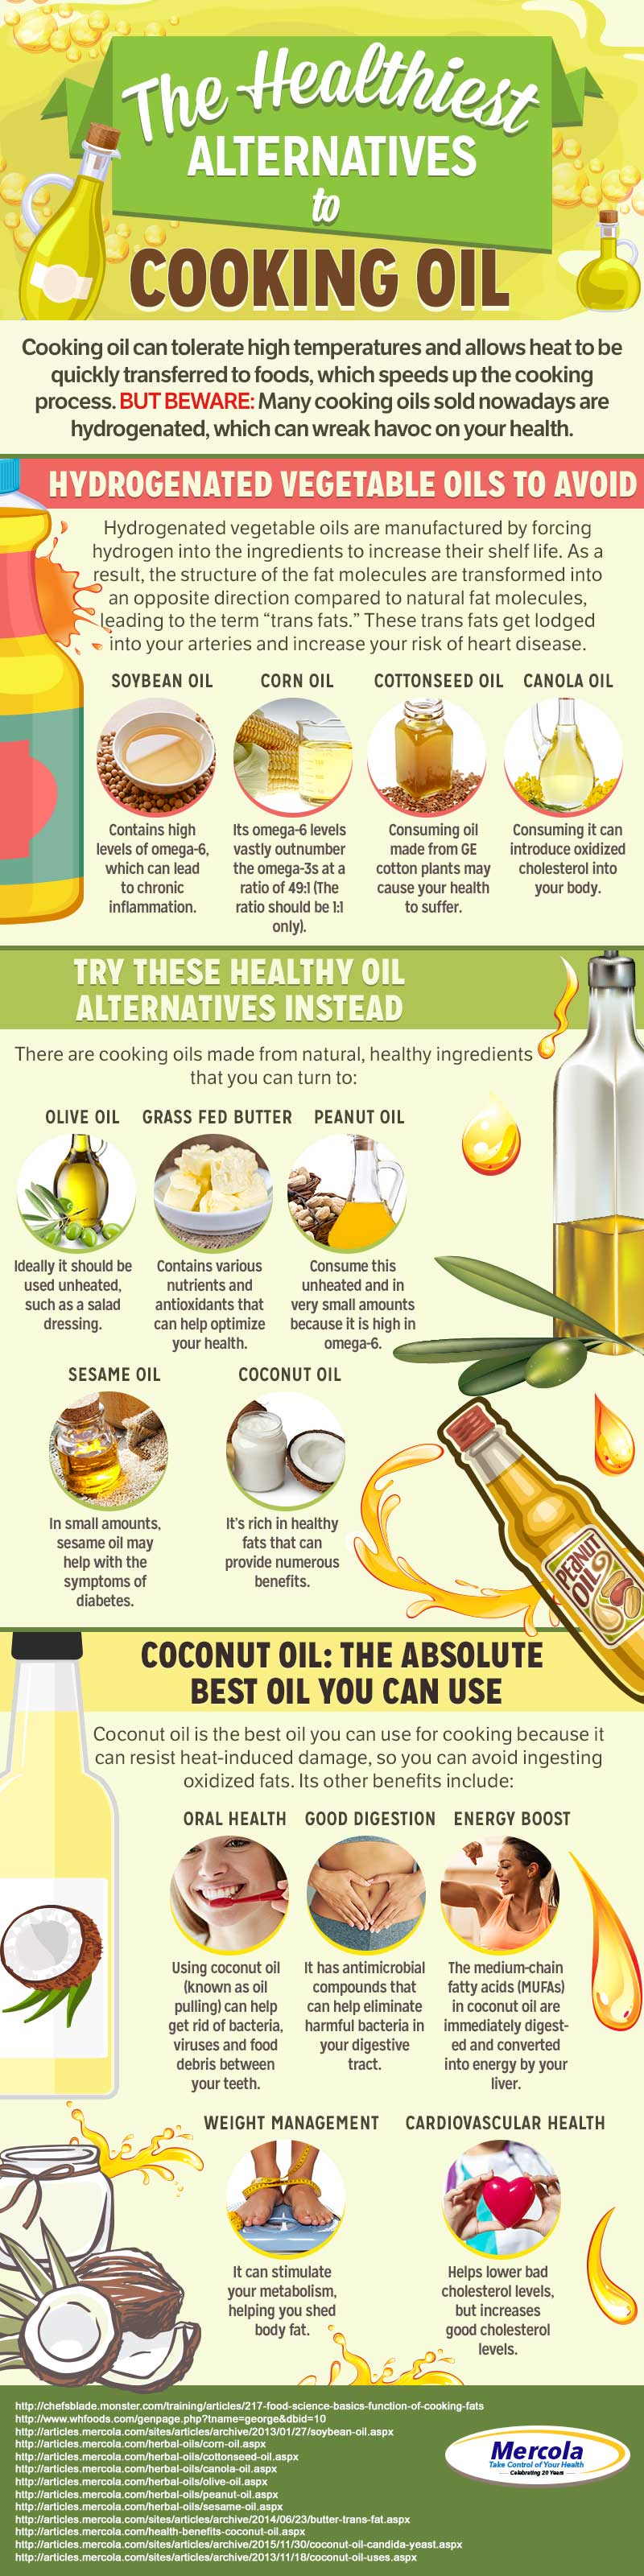 The Healthiest Alternatives to Cooking Oil